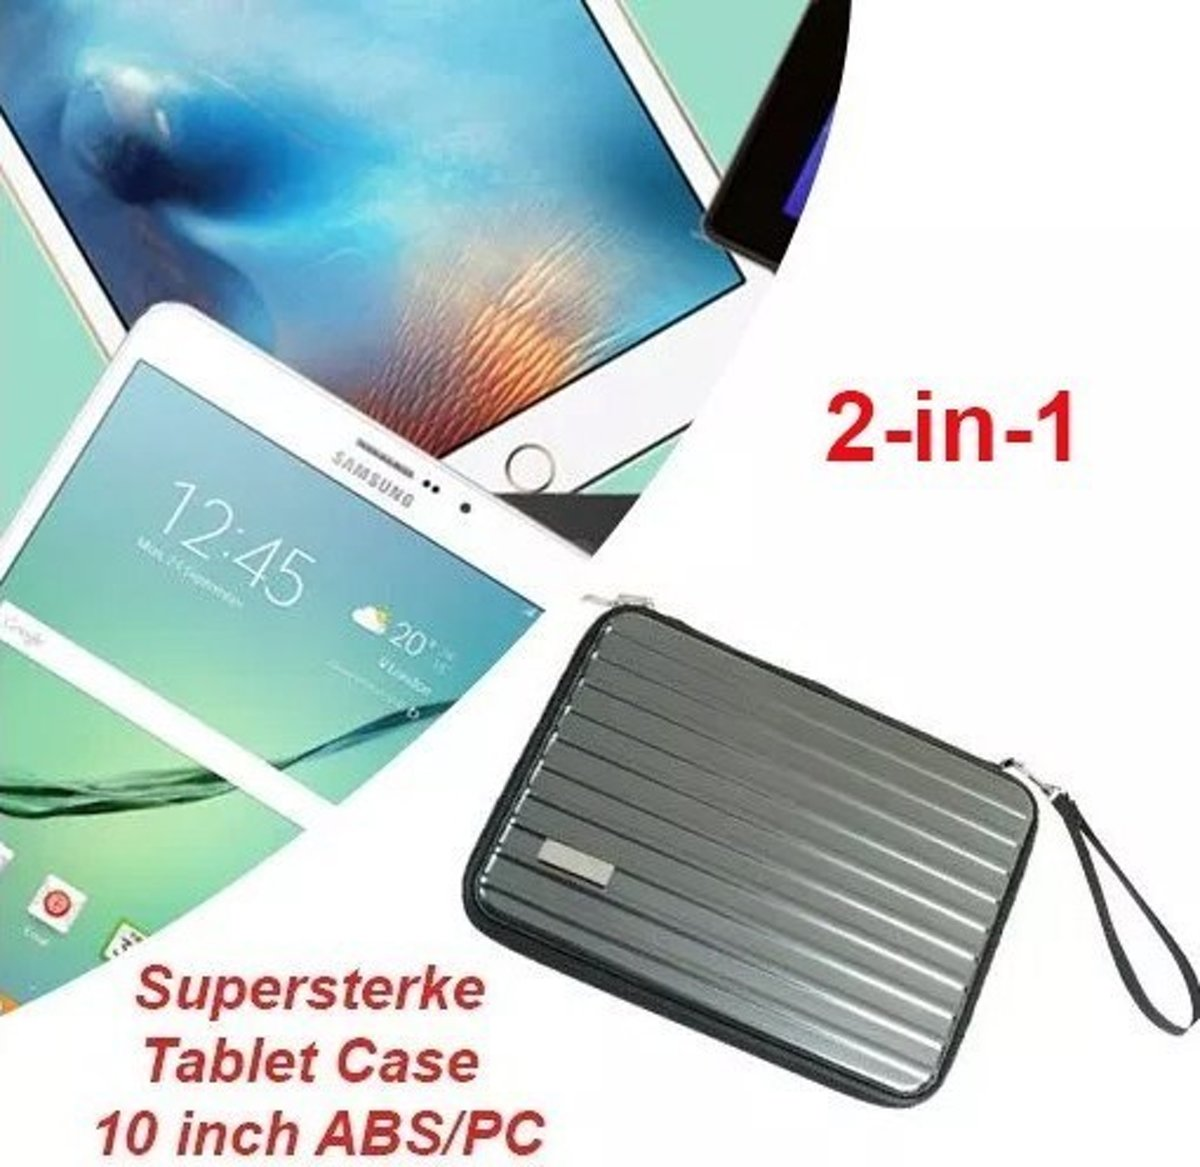 Supersterke Tablet Case 10 inch ABS/PC (Antraciet)